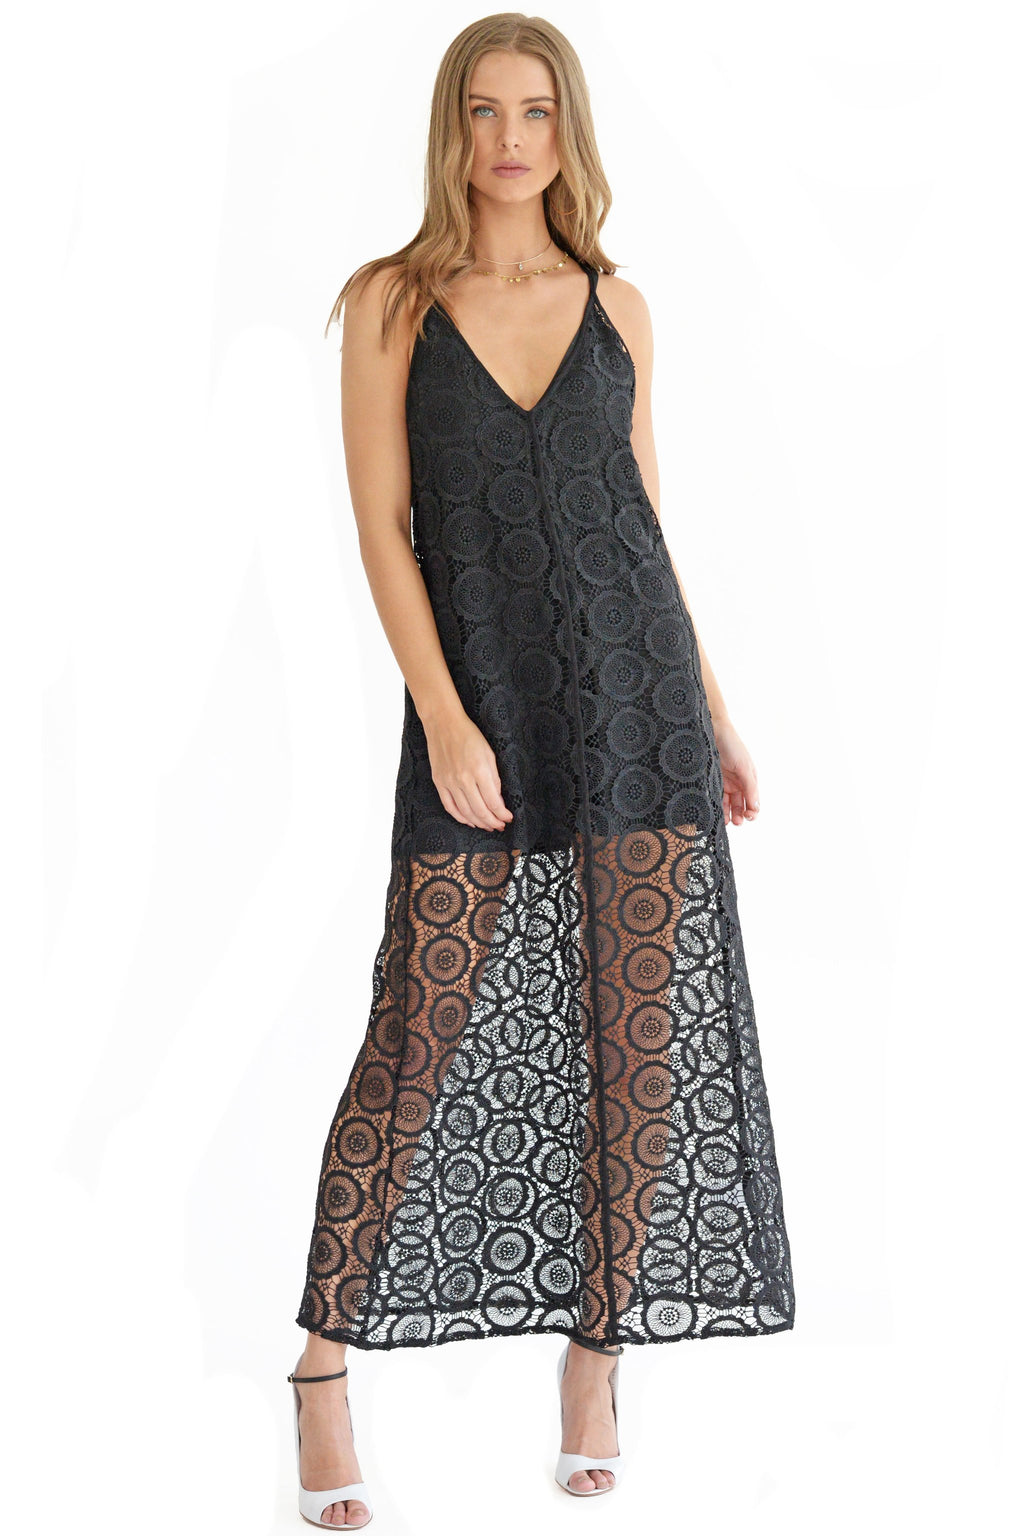 Crochet Lace Maxi Dress in Black